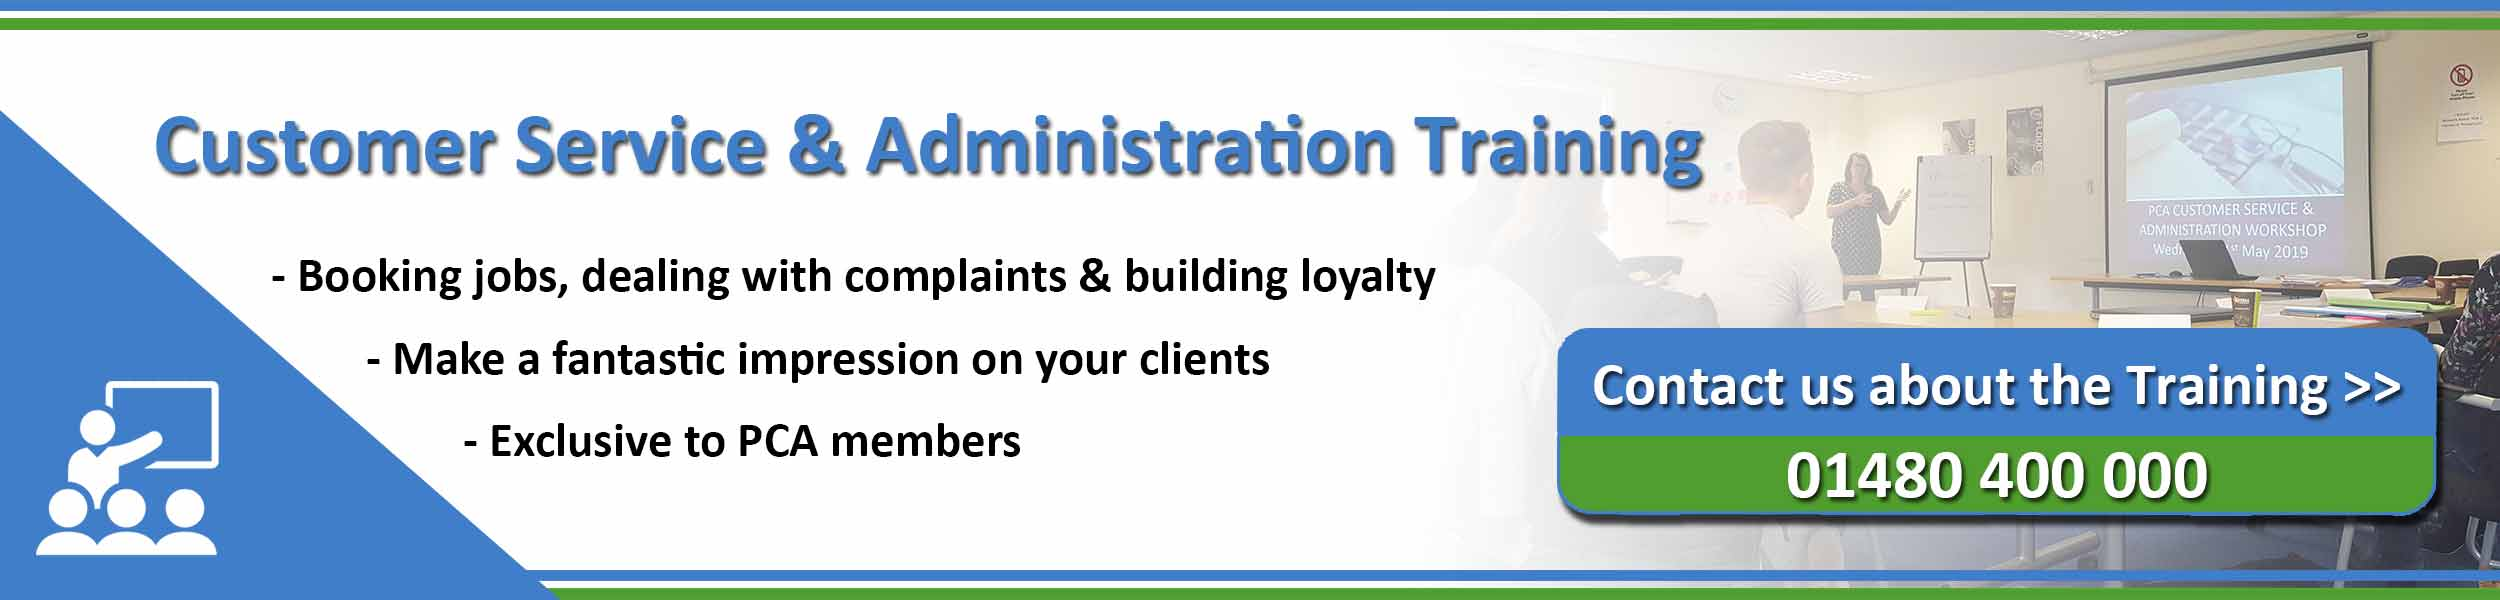 PCA Customer Service and Administration training